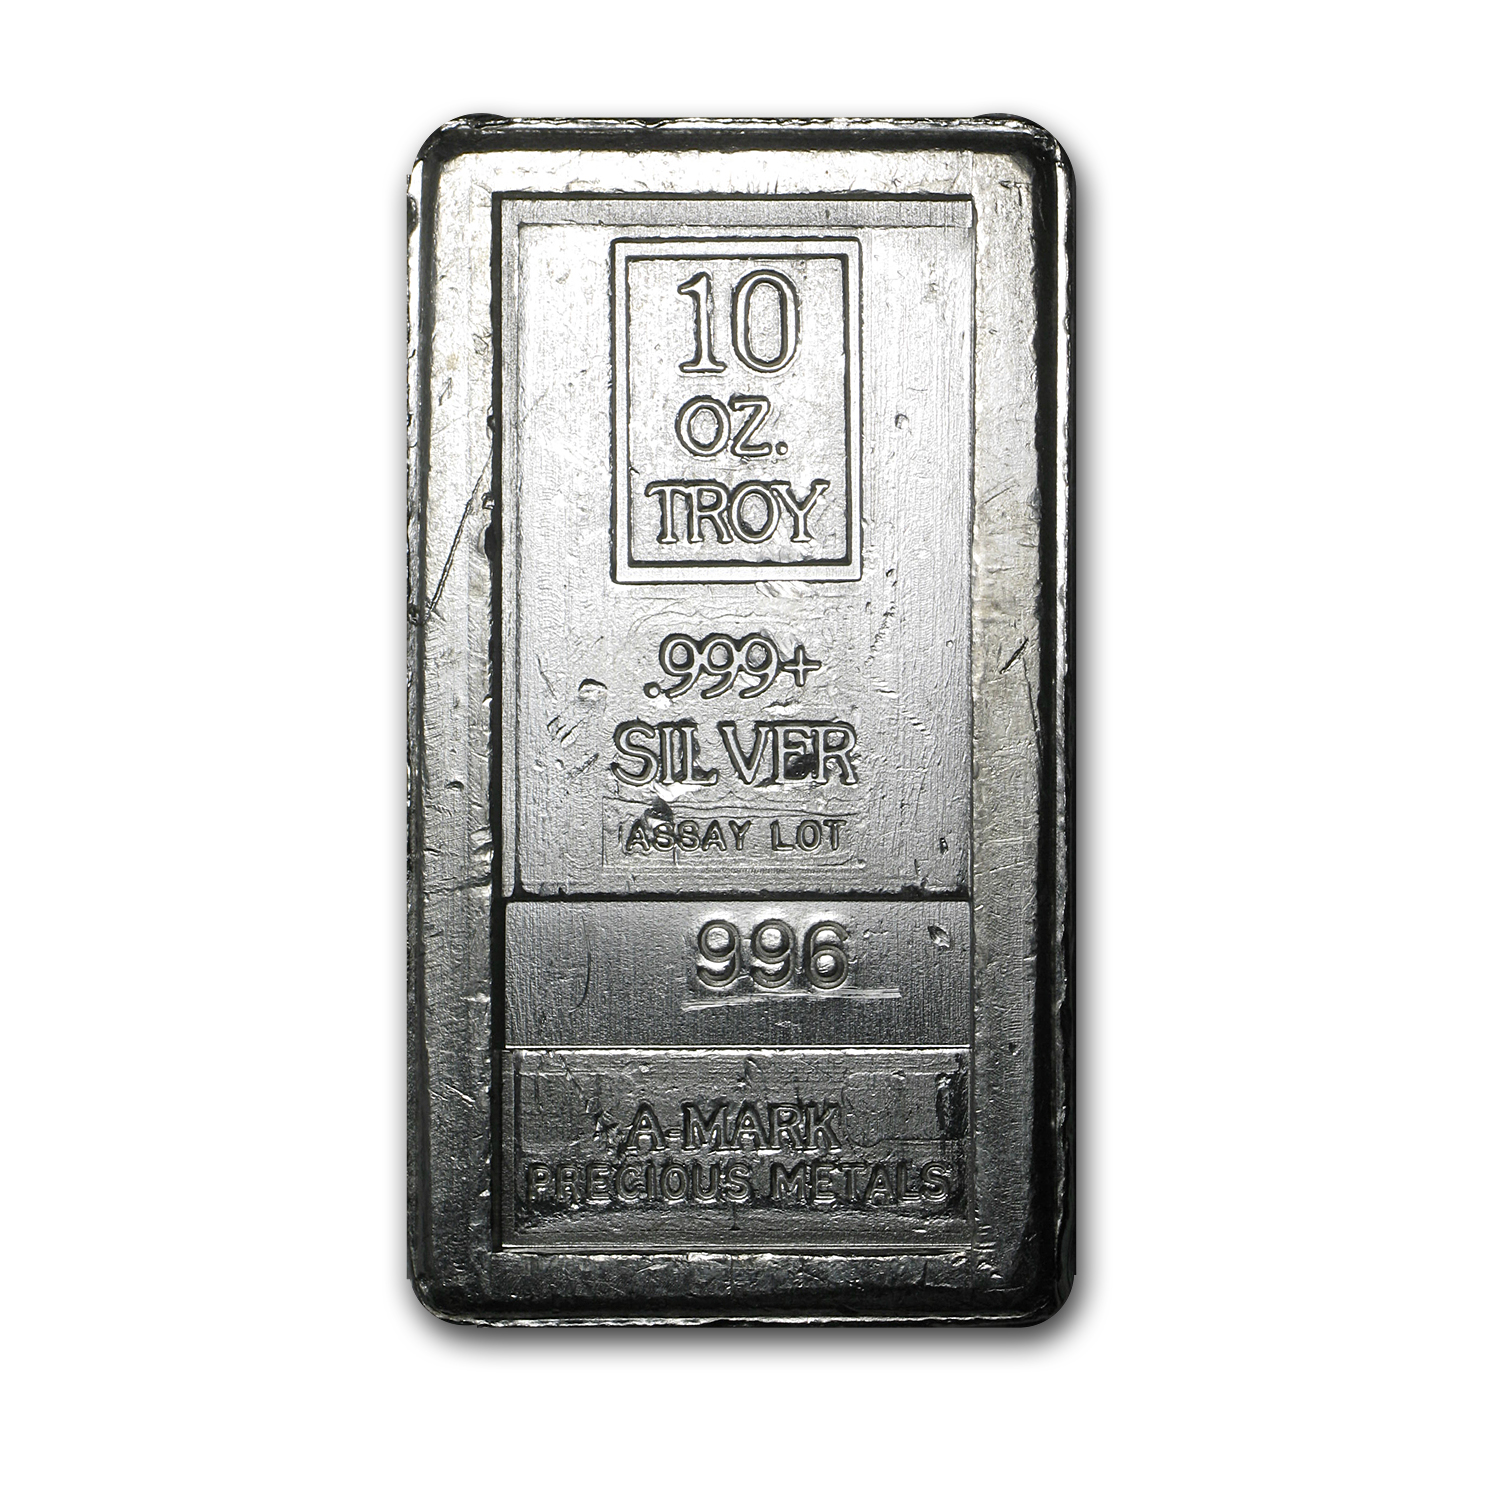 10 oz Silver Bars - A-Mark (Stackable)